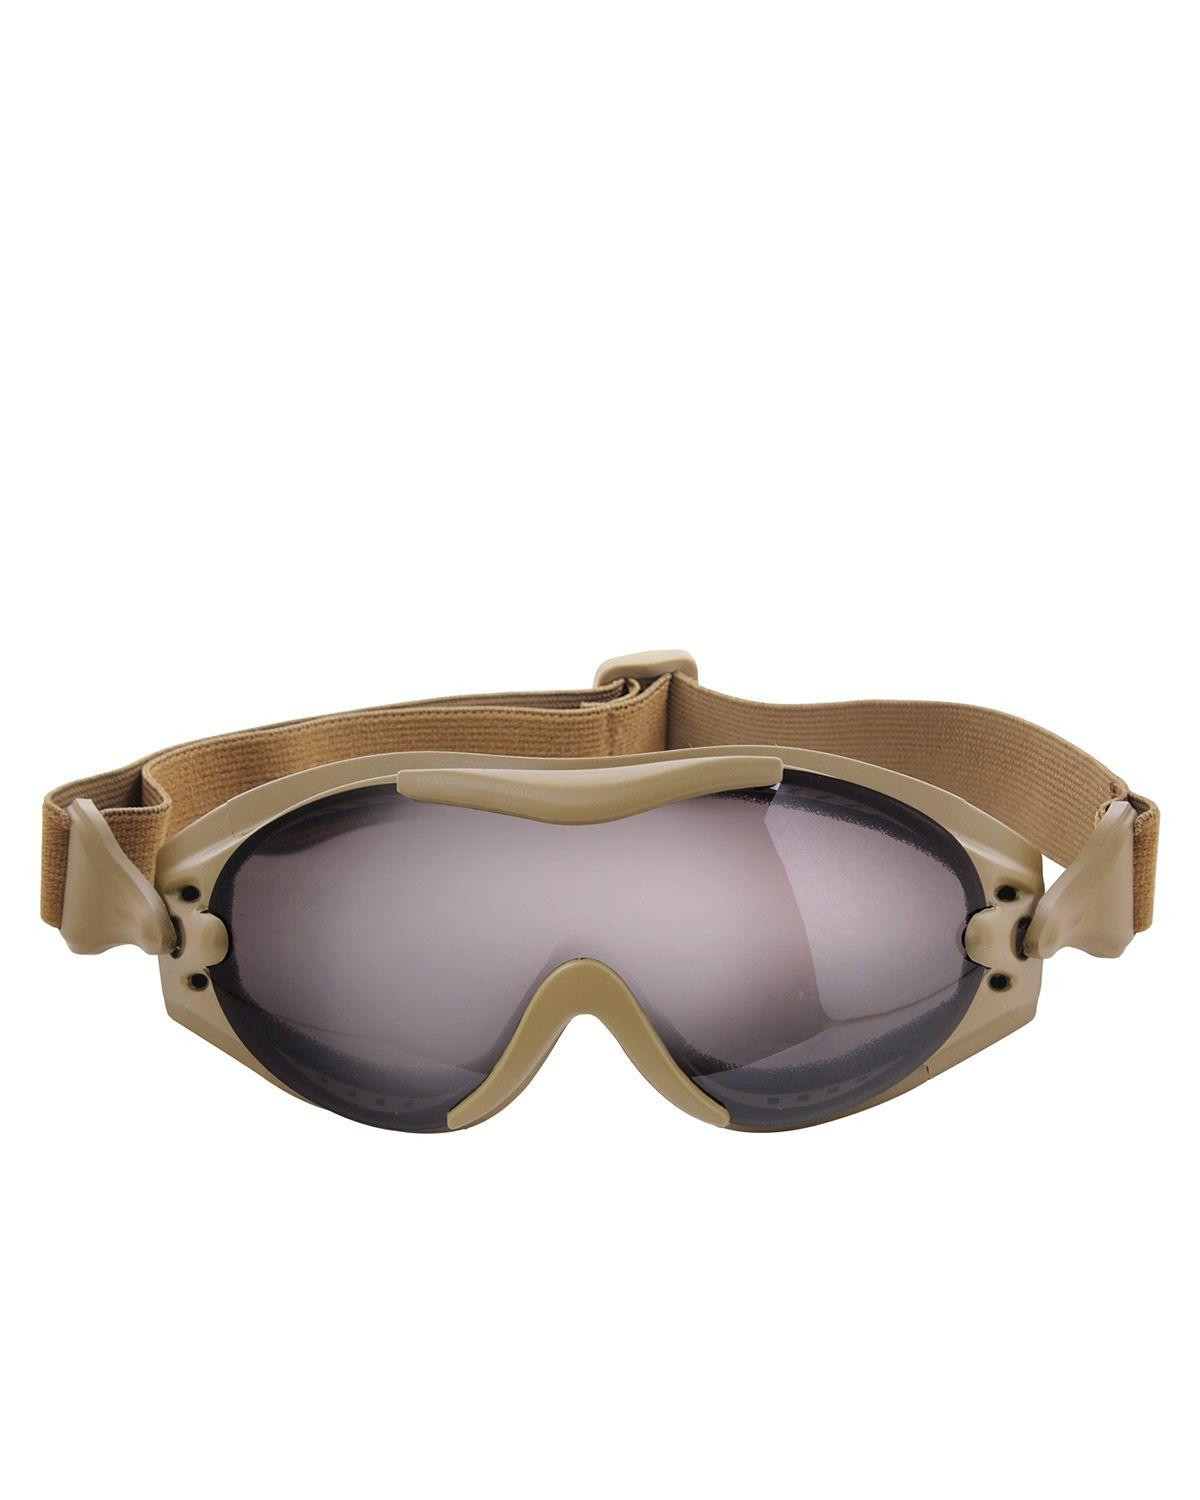 Image of   Rothco SWAT Taktisk Goggle (Coyote Brun, One Size)